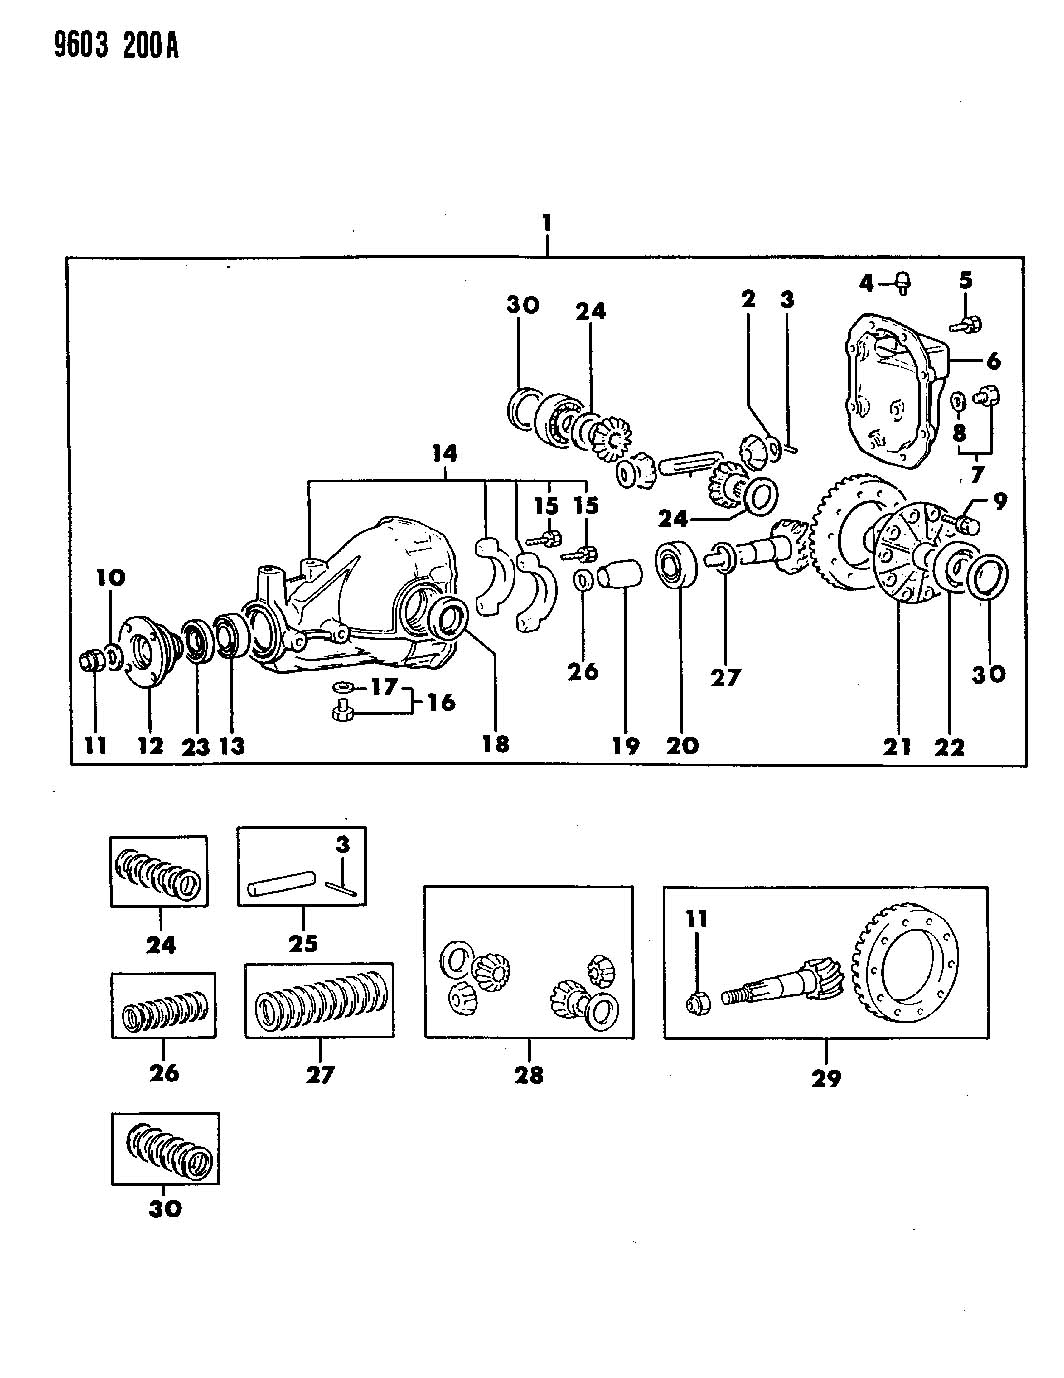 Service manual [How To Remove Differential From A 1991